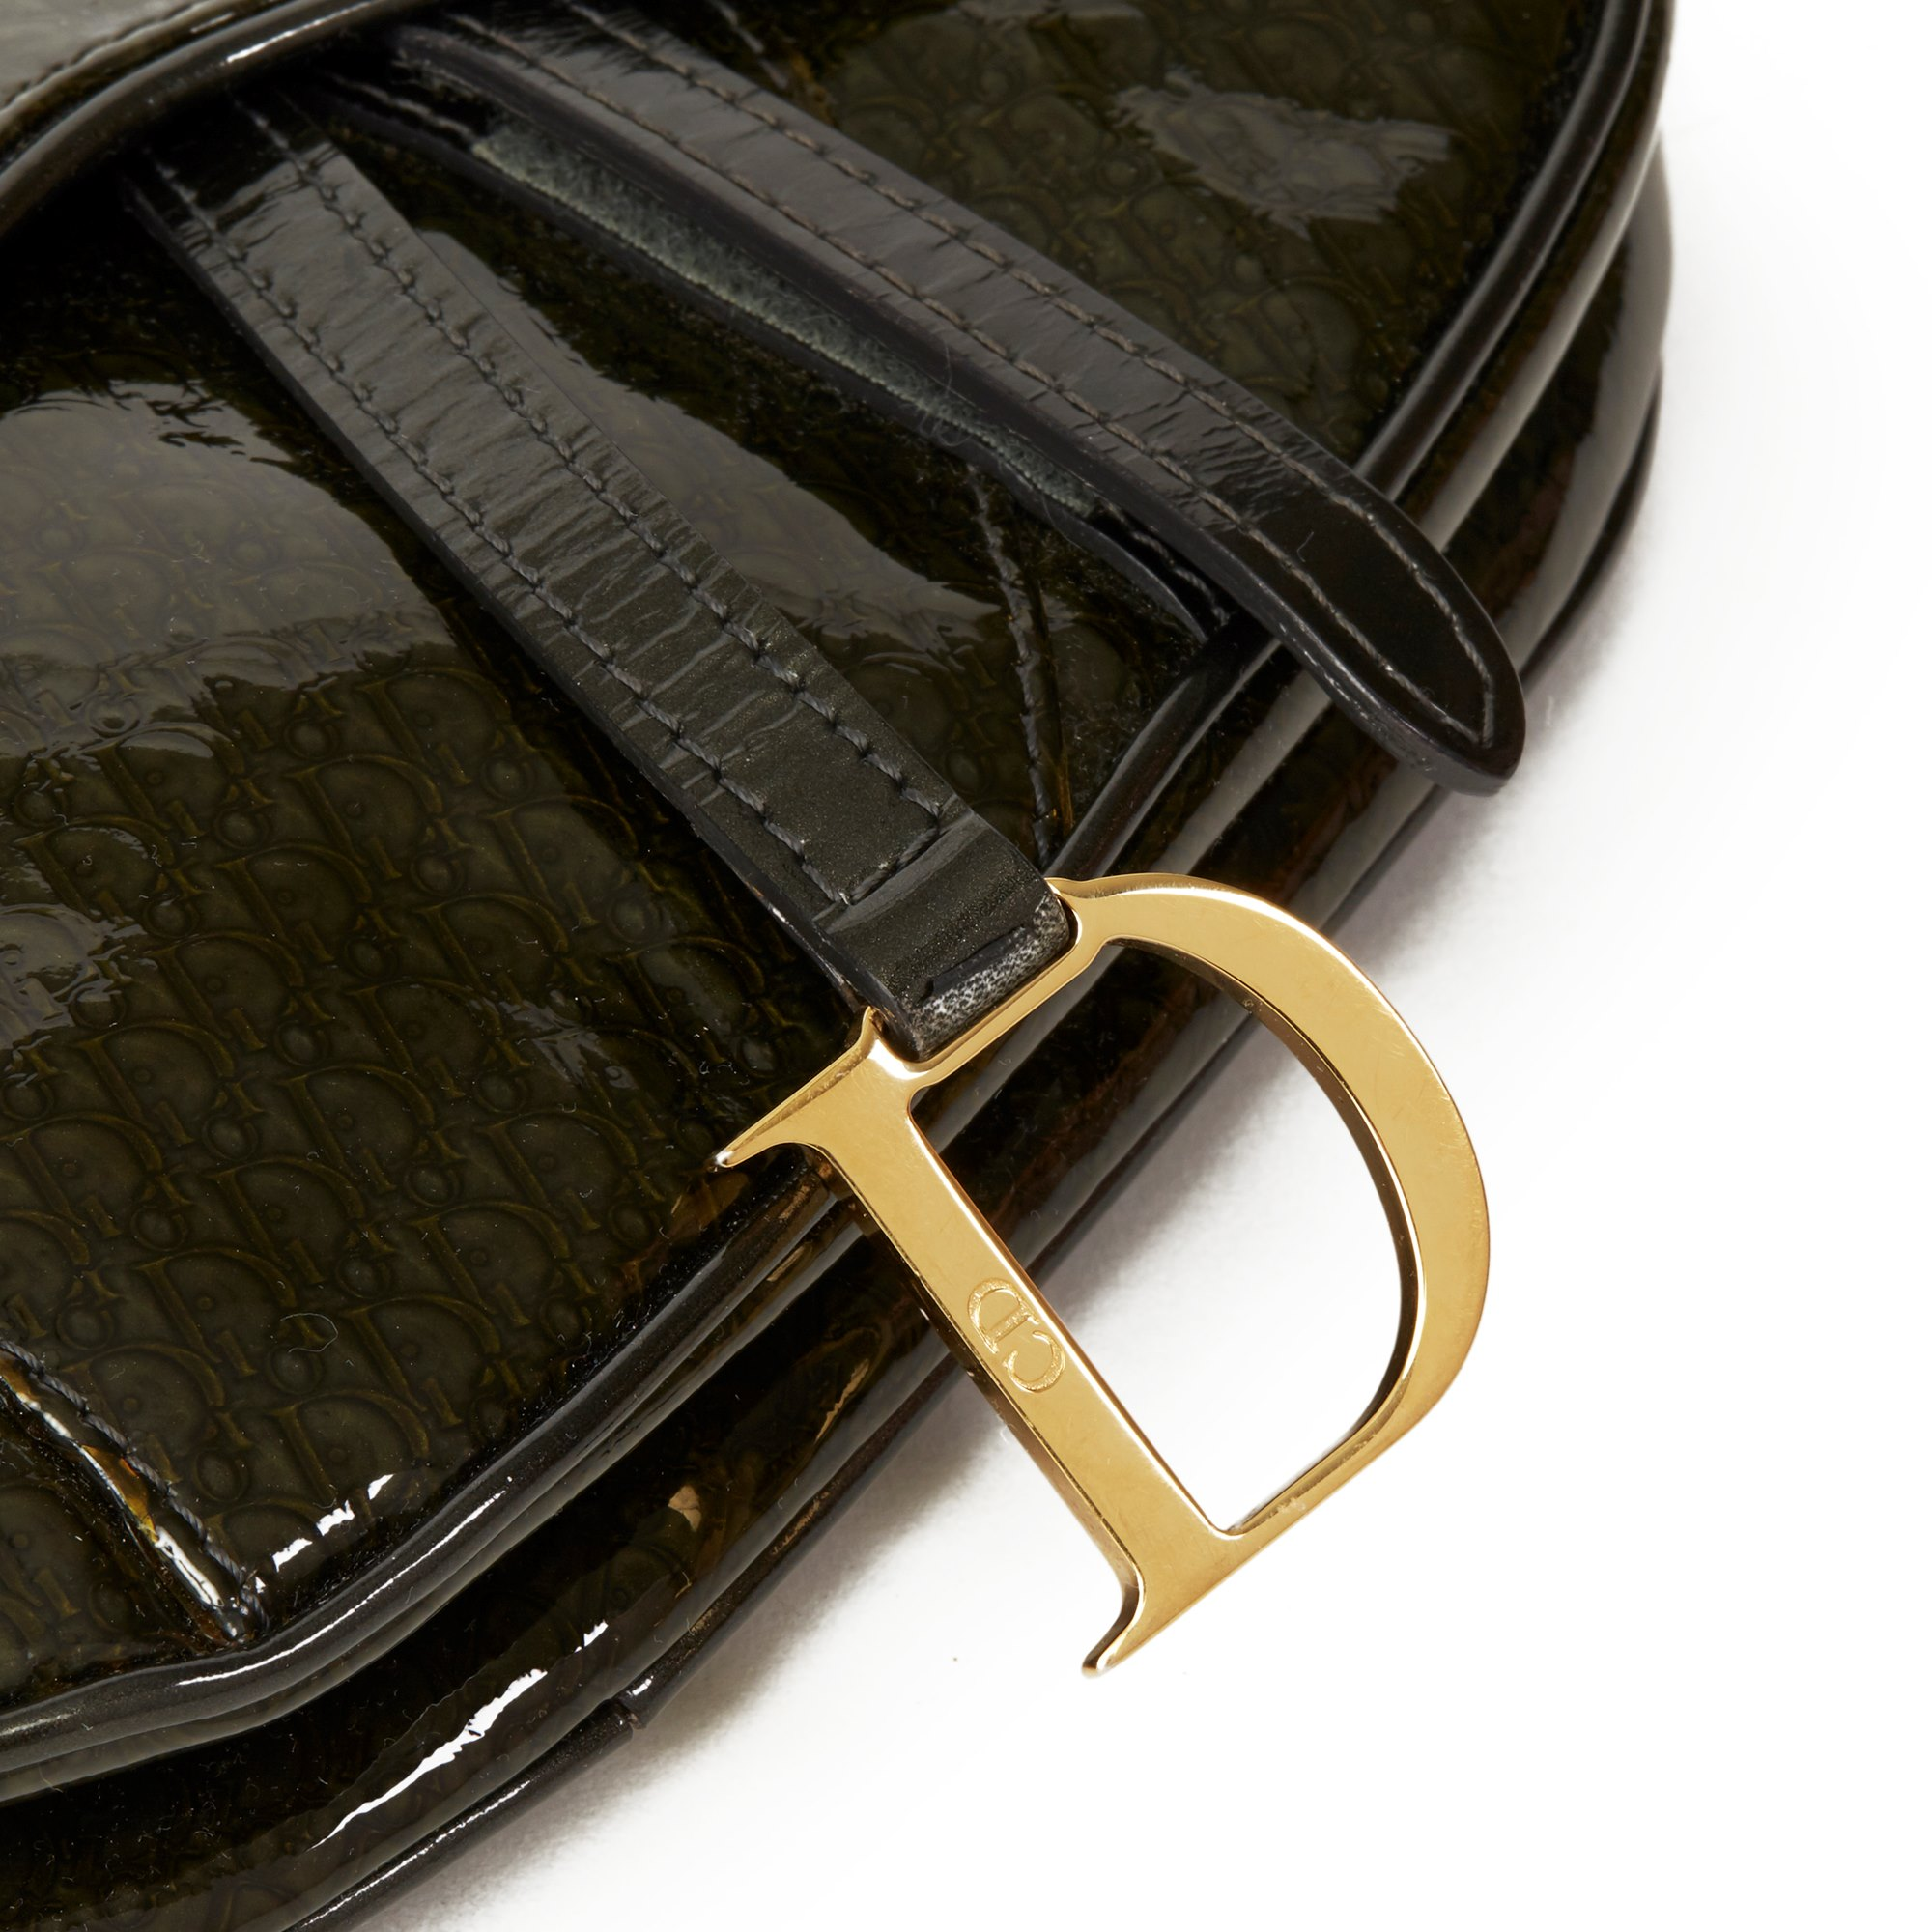 Christian Dior Olive Green Monogram Patent Leather Vintage Mini Saddle Bag